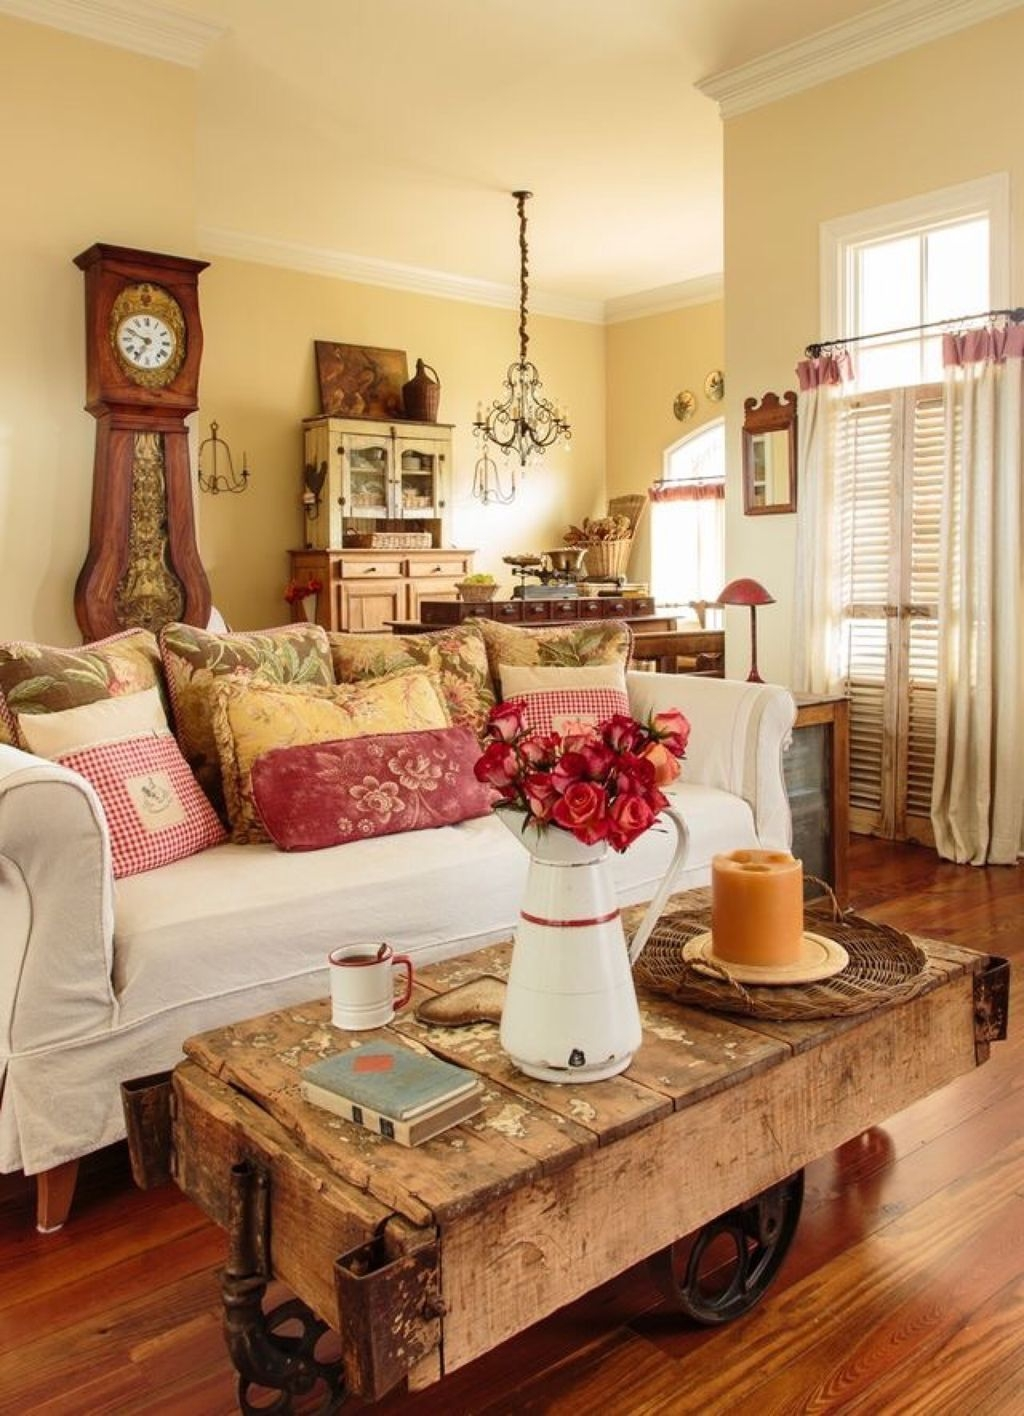 Cozy French Country Living Room Decor Ideas 07